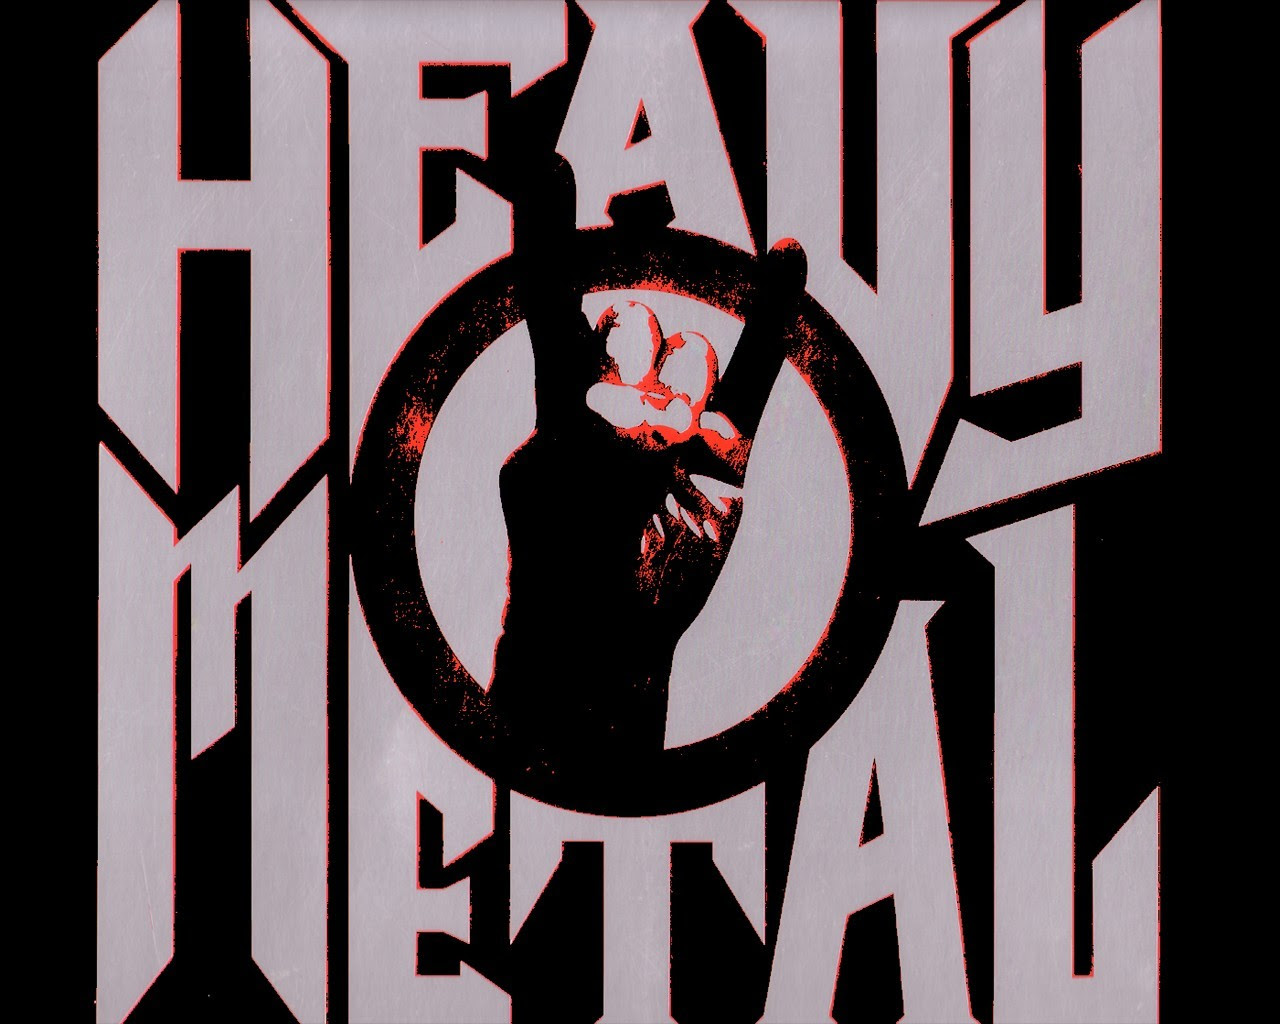 Heavy Metal BBC Explores The Music Personalities